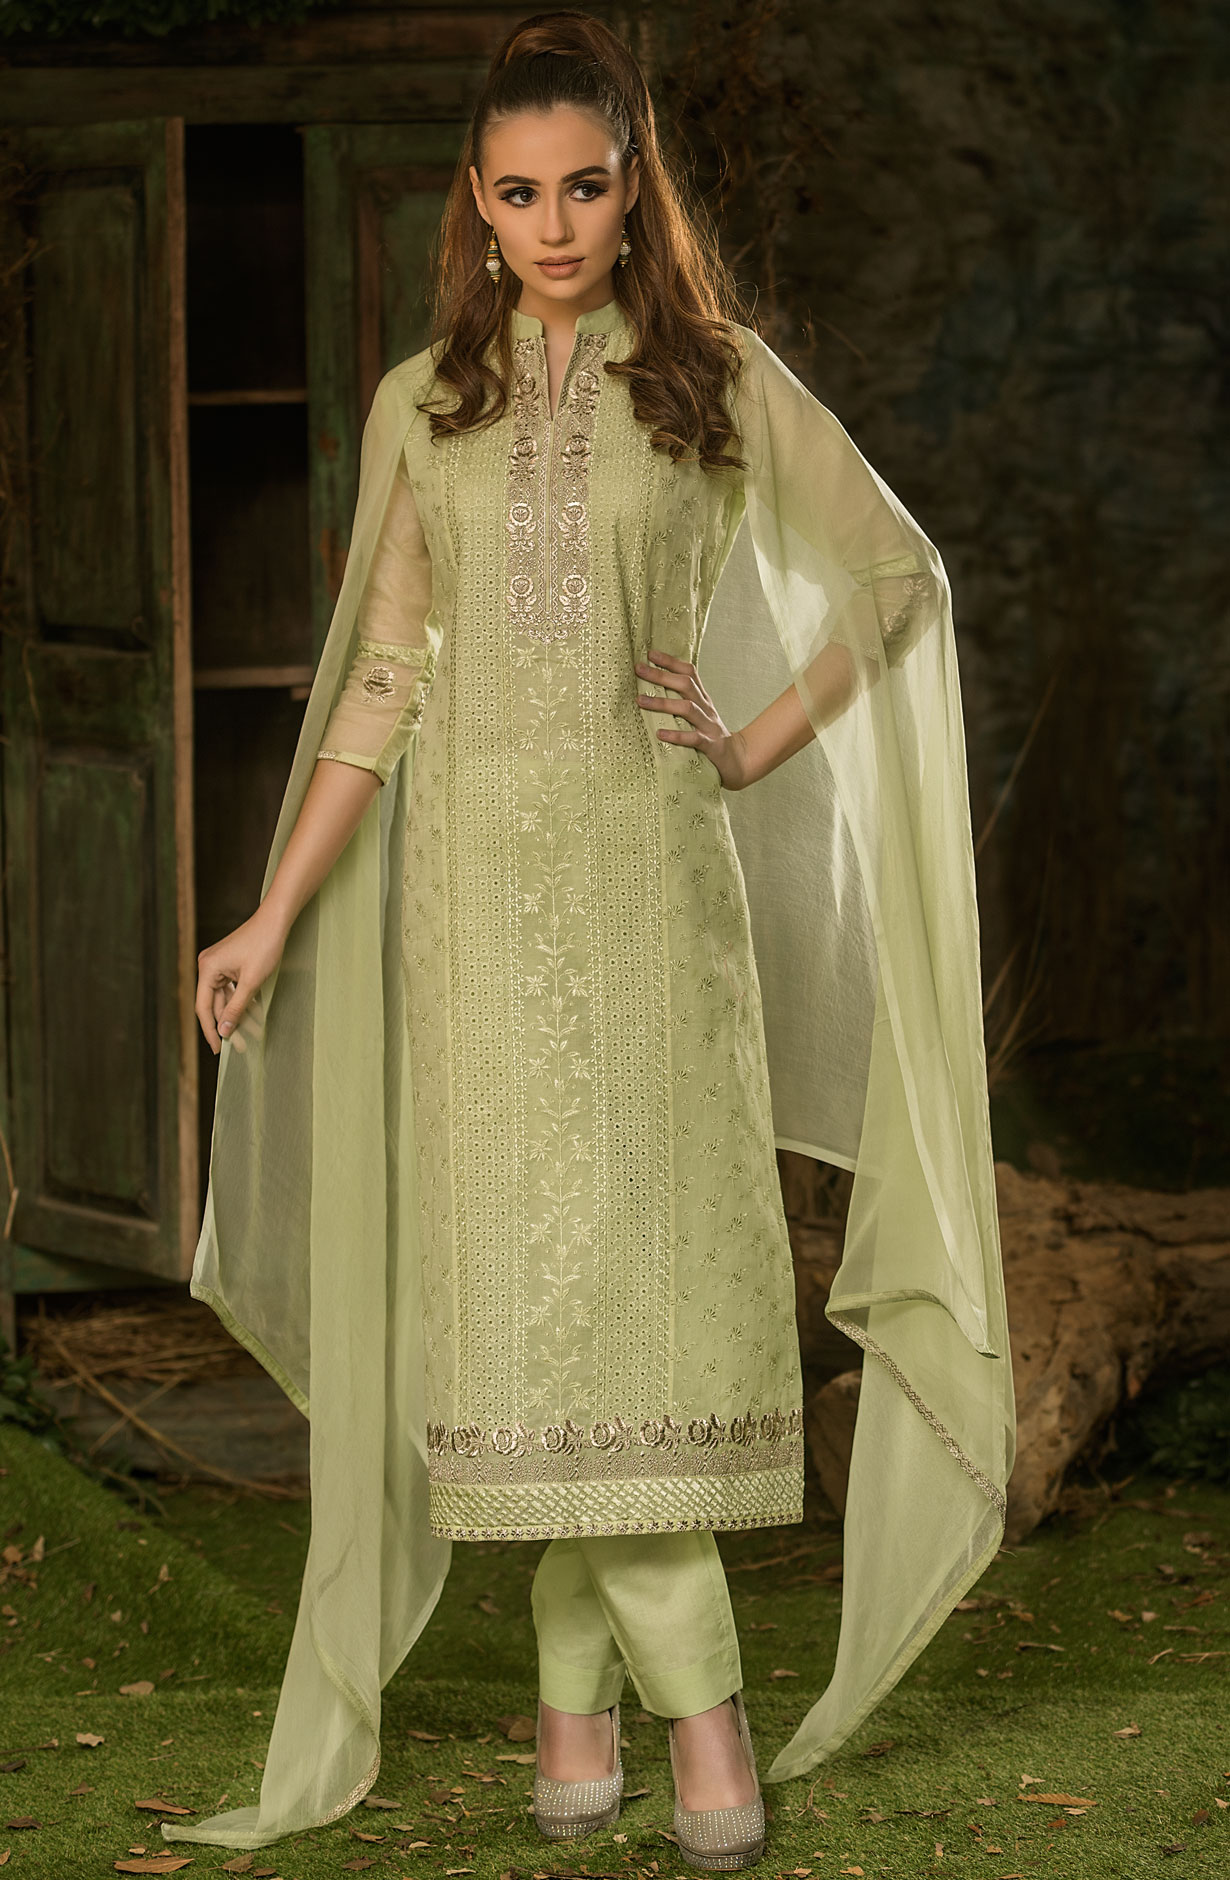 dd5ffe36ebd Cotton Embroidered Lime Green Salwar Kameez Dupatta with Zari Work ...